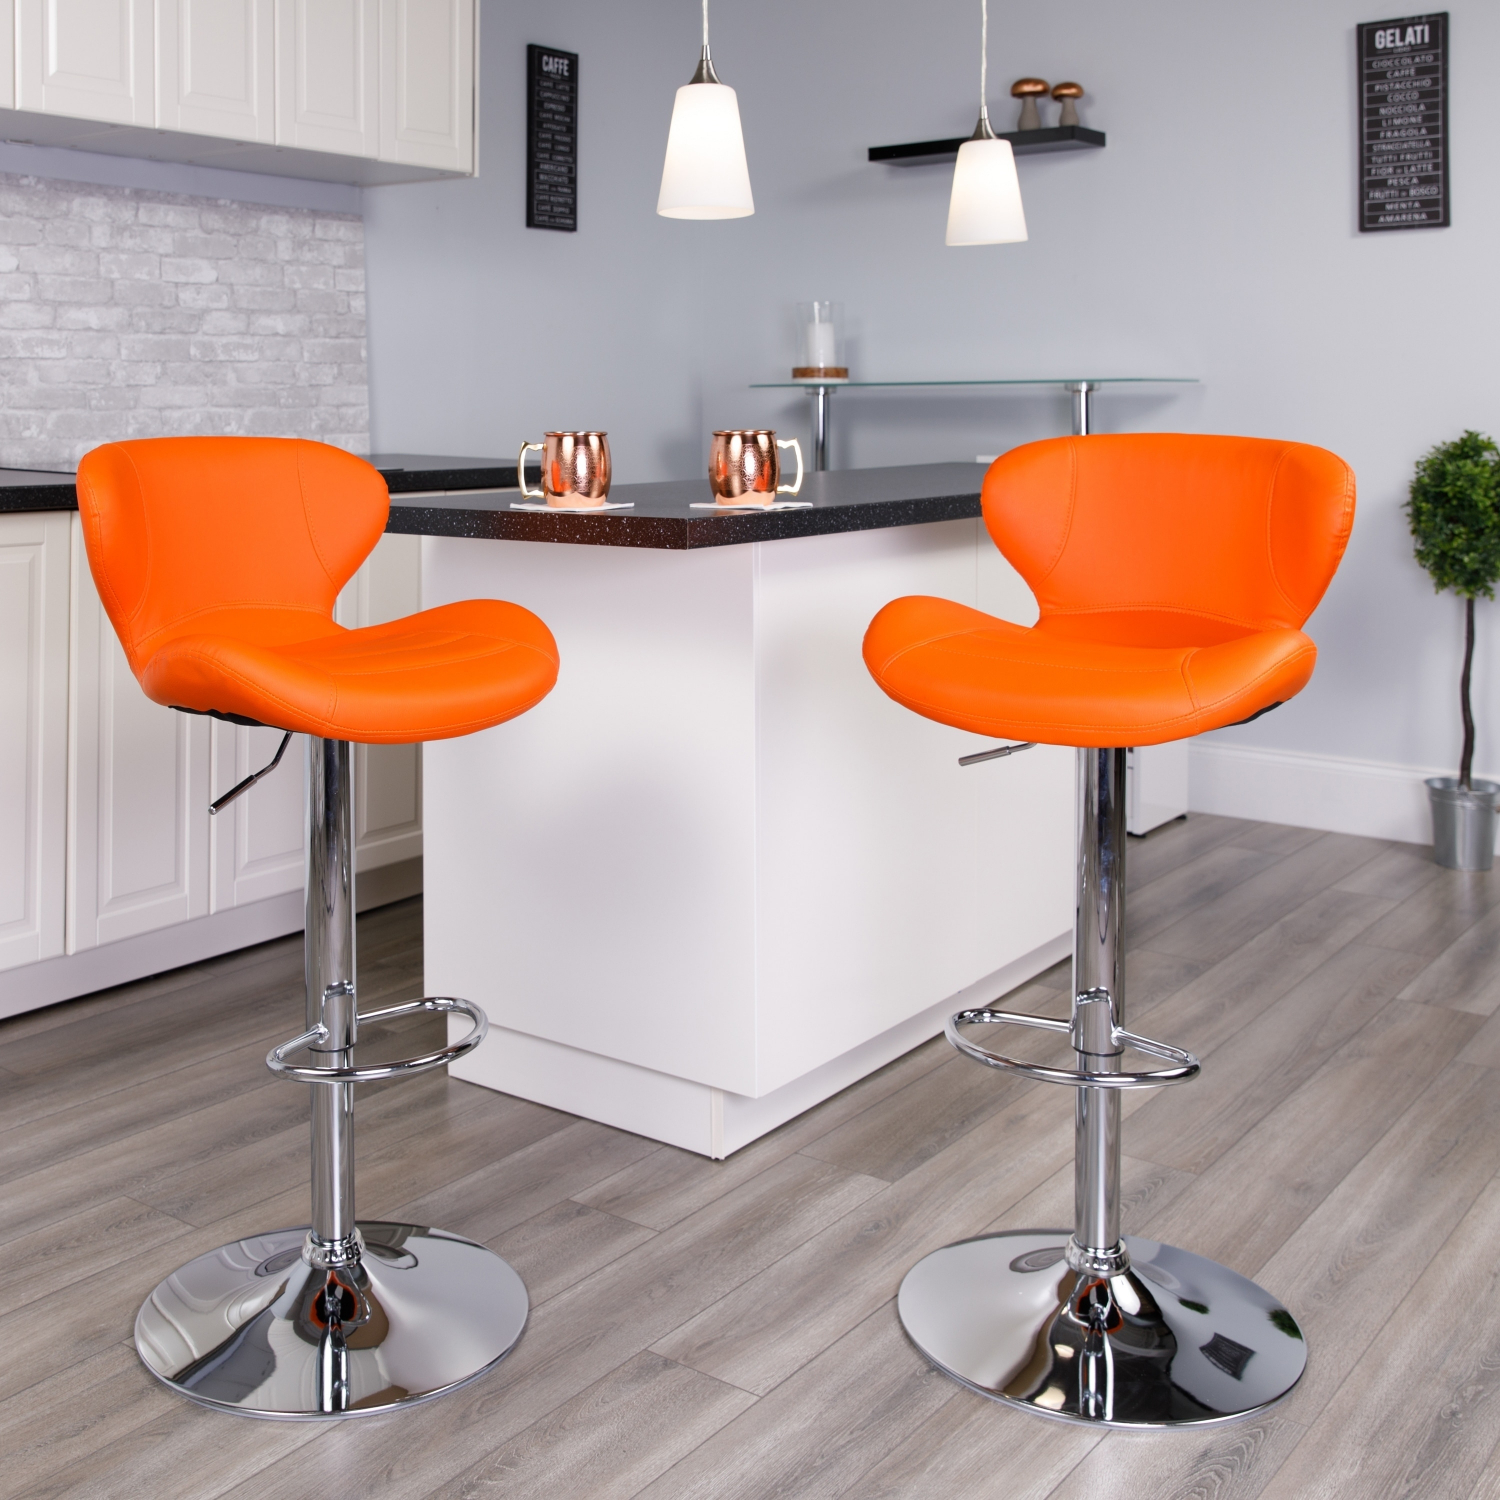 Sensational Details About Adjustable Height Bar Stool Base Modern Contemporary Foot Rest Chrome Chair Gmtry Best Dining Table And Chair Ideas Images Gmtryco